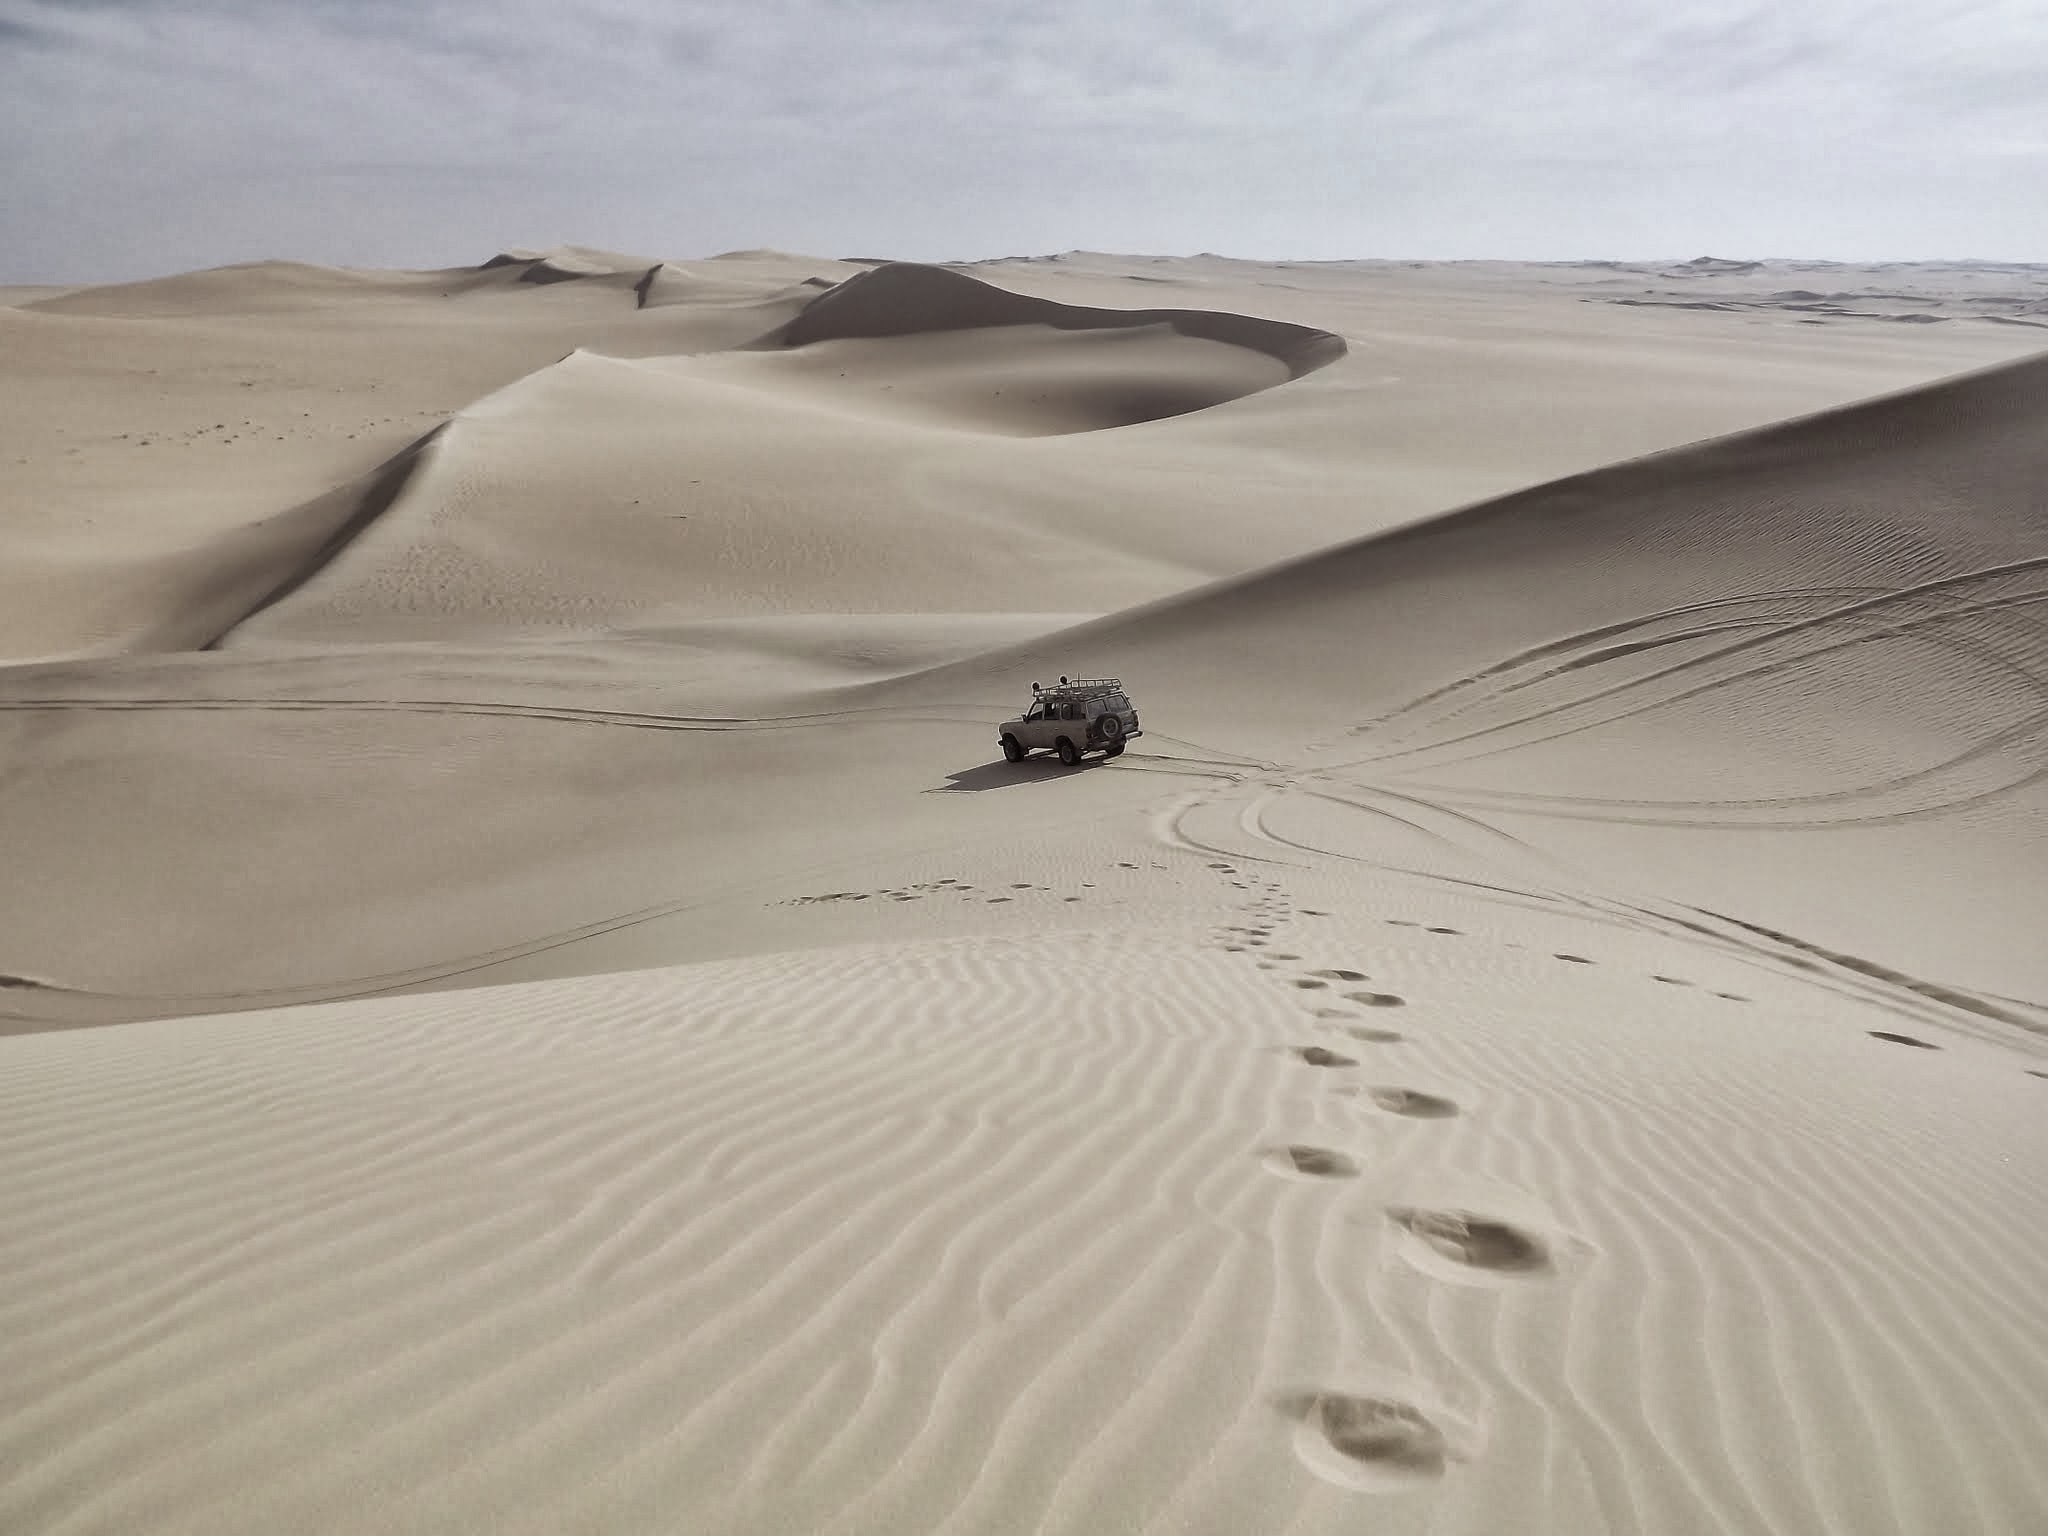 An off-road vehicle driving on the desert with sand dunes stretching to the horizon